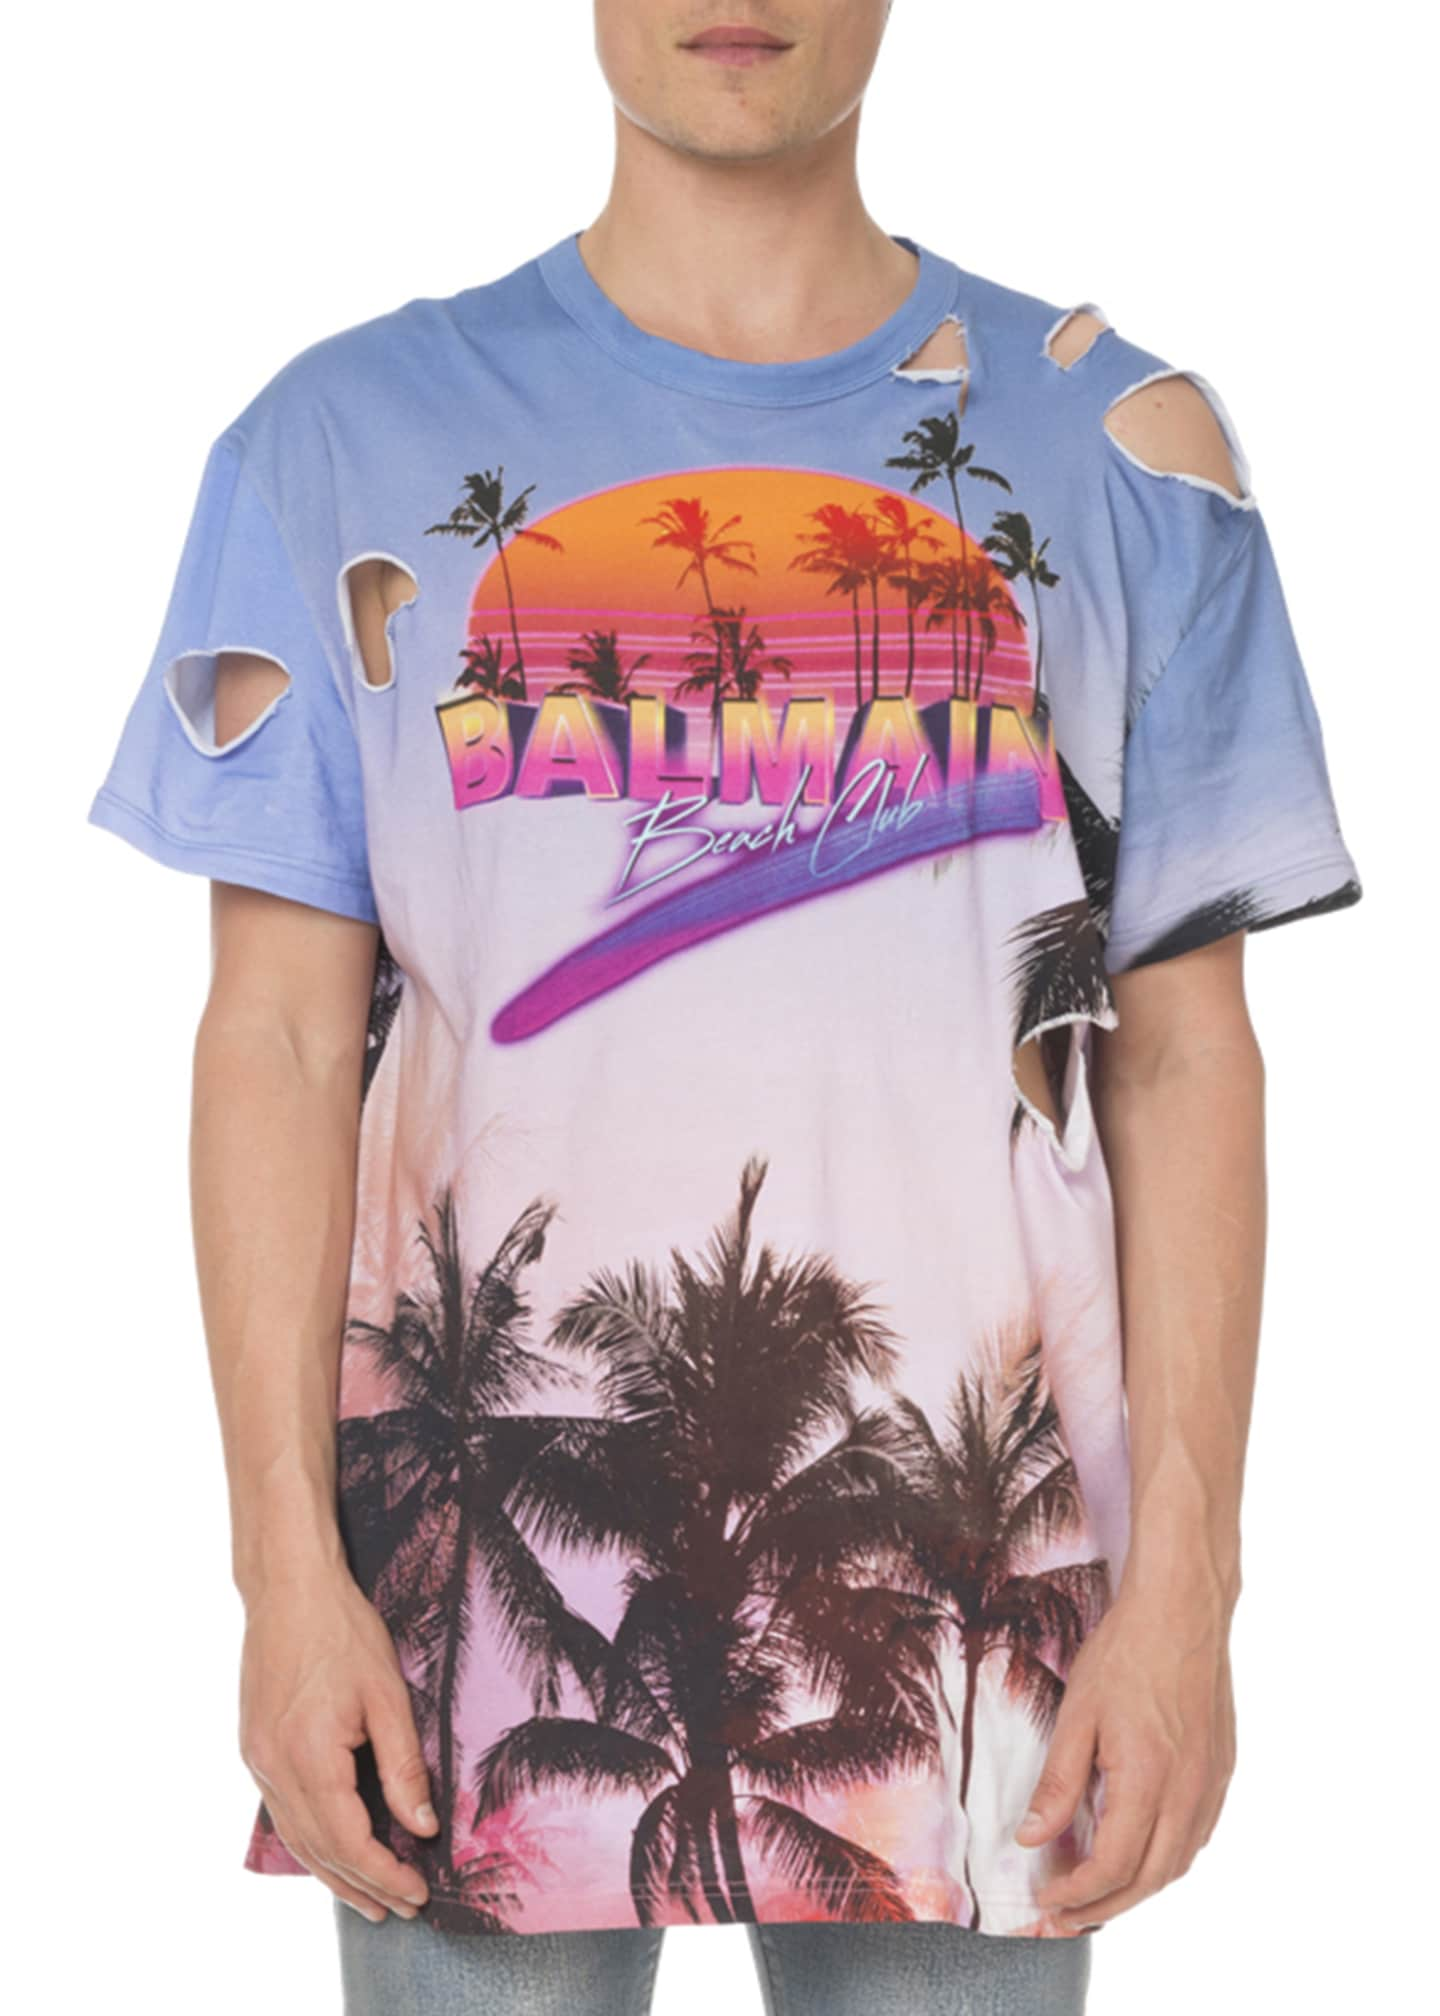 Balmain Men's Oversized Beach Club T-Shirt